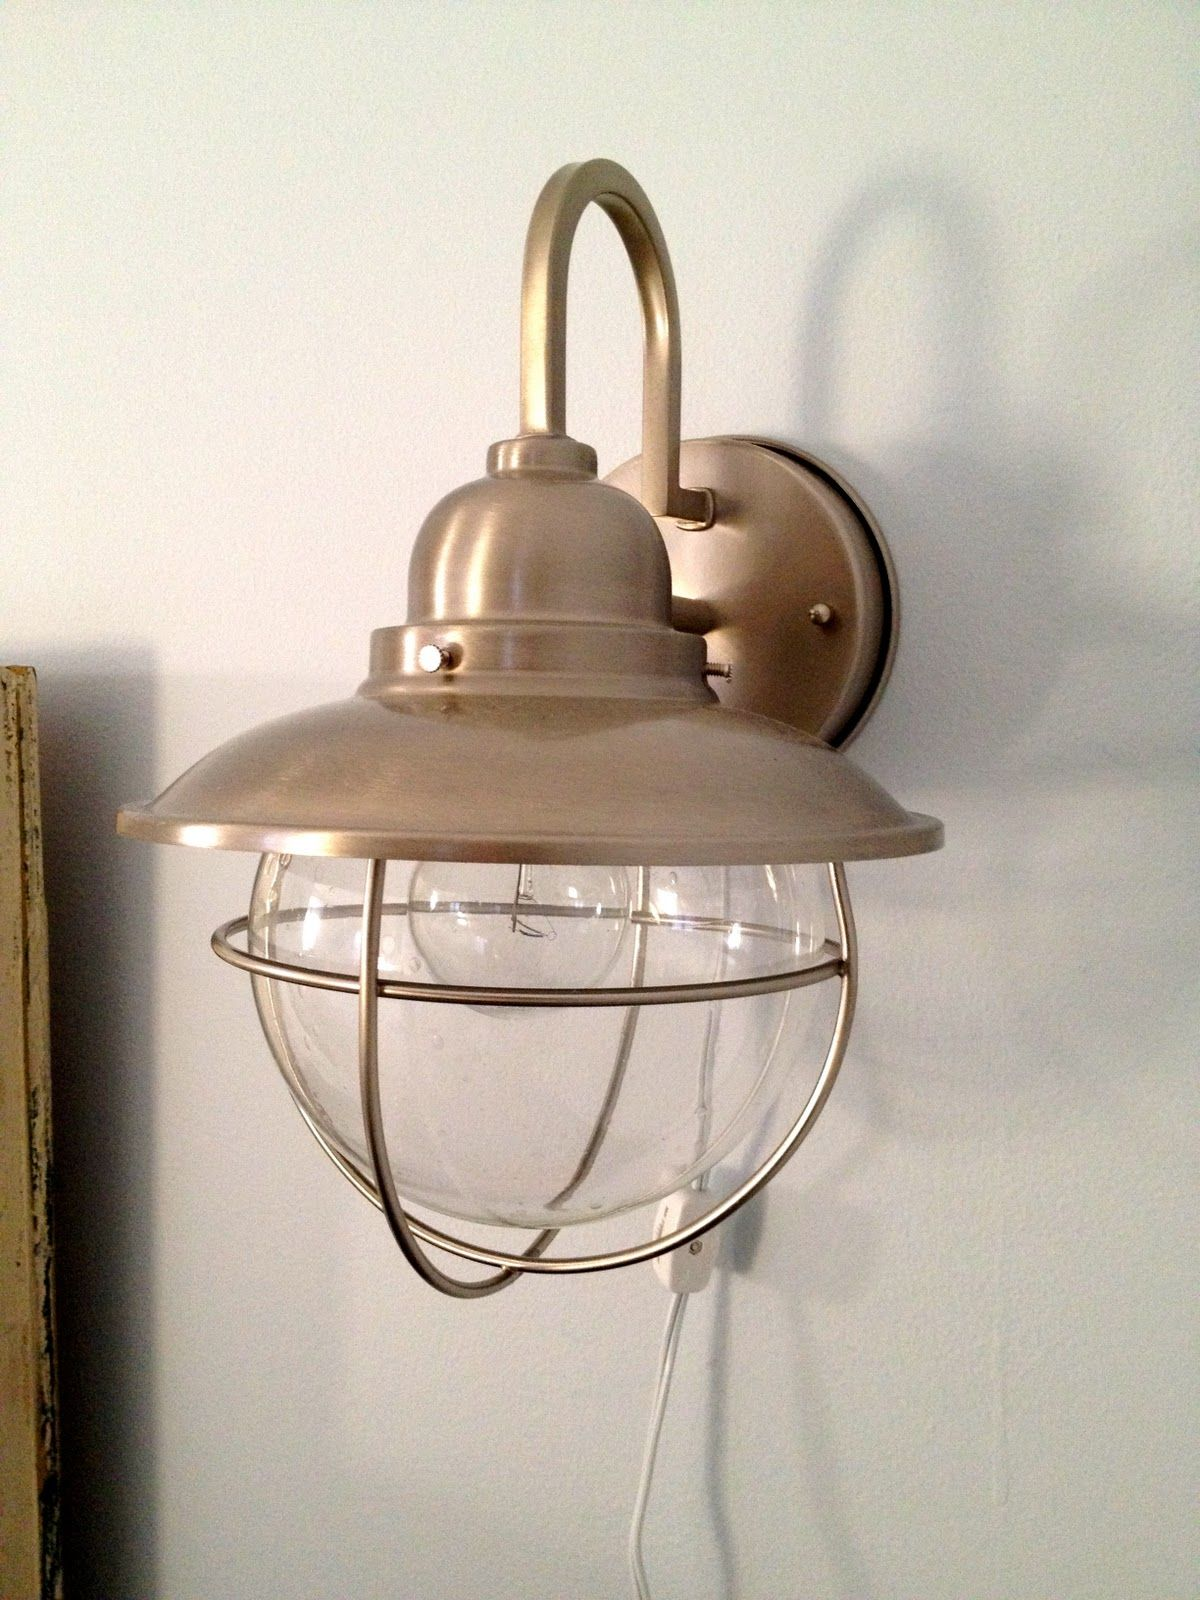 Plug In Wall Sconces For The Bedroom : How to make a hard-wire wall light into a plug in wall sconce.....I might be able to do this ...